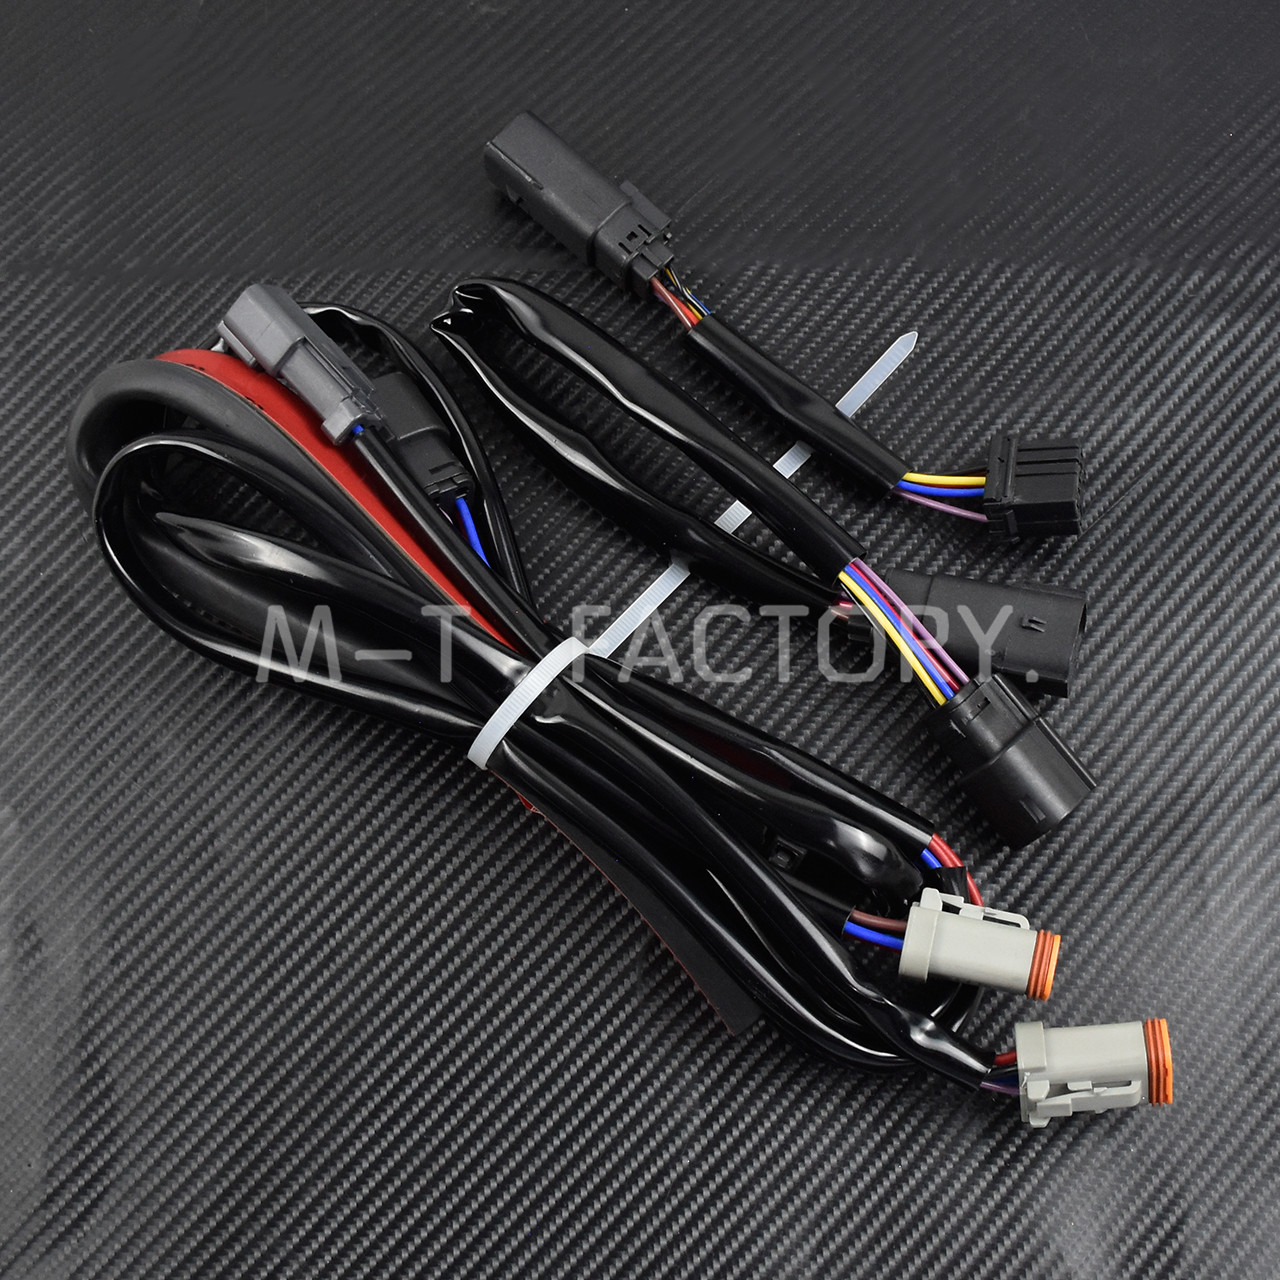 Image 5 - Motorcycle LED Light Rear Fender Extension Fascia Set For Harley Touring Electra Road Glide 2014 Up FLTRXS Ultra Limited FLHXCovers & Ornamental Mouldings   -